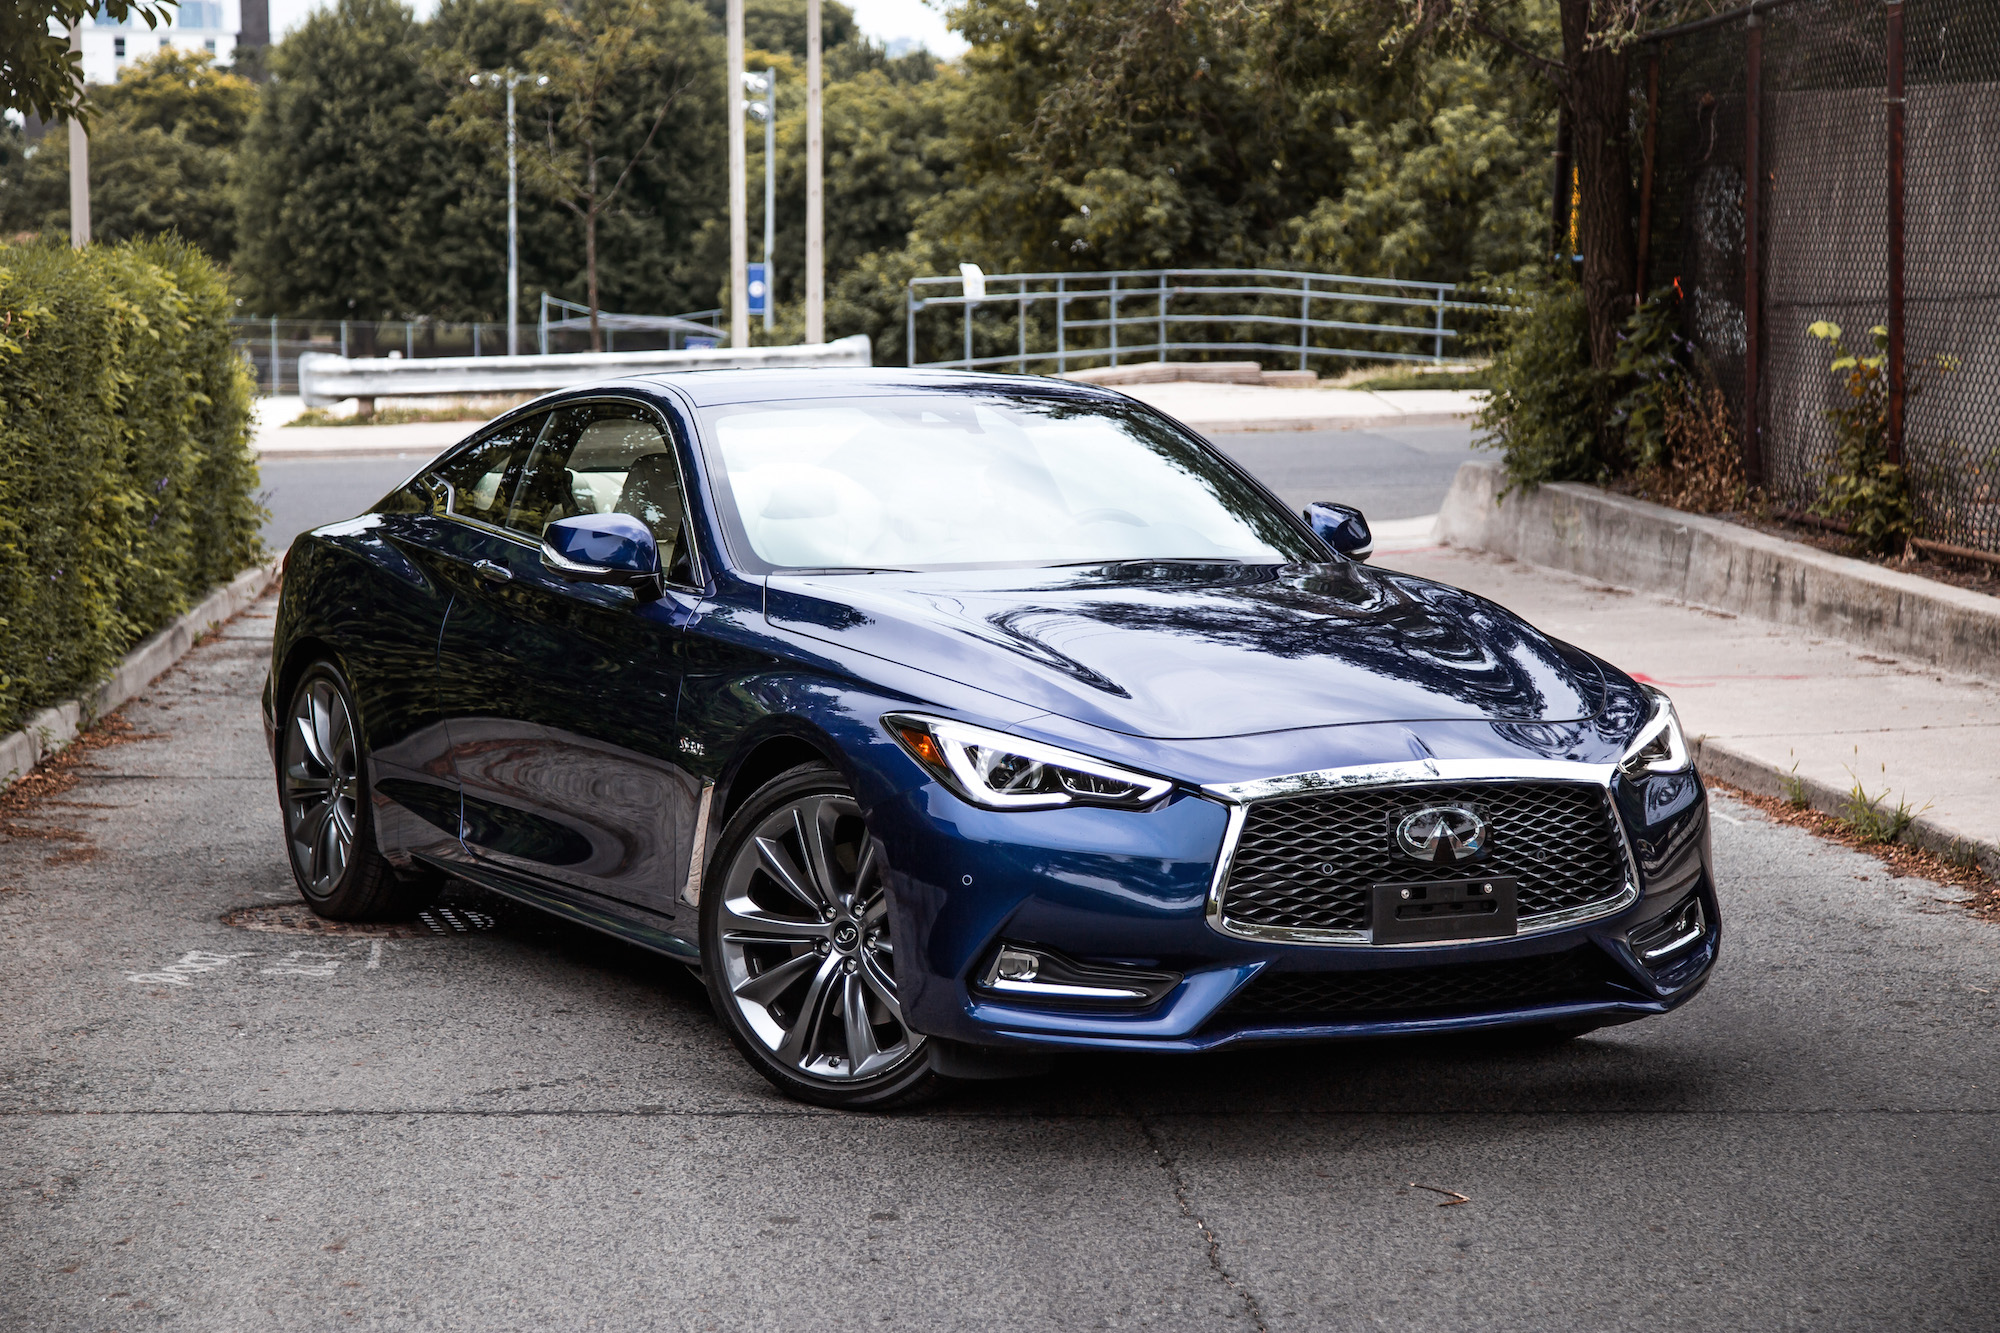 Infiniti 2018 G37 >> Review: 2018 Infiniti Q60 Red Sport 400 AWD | CAR